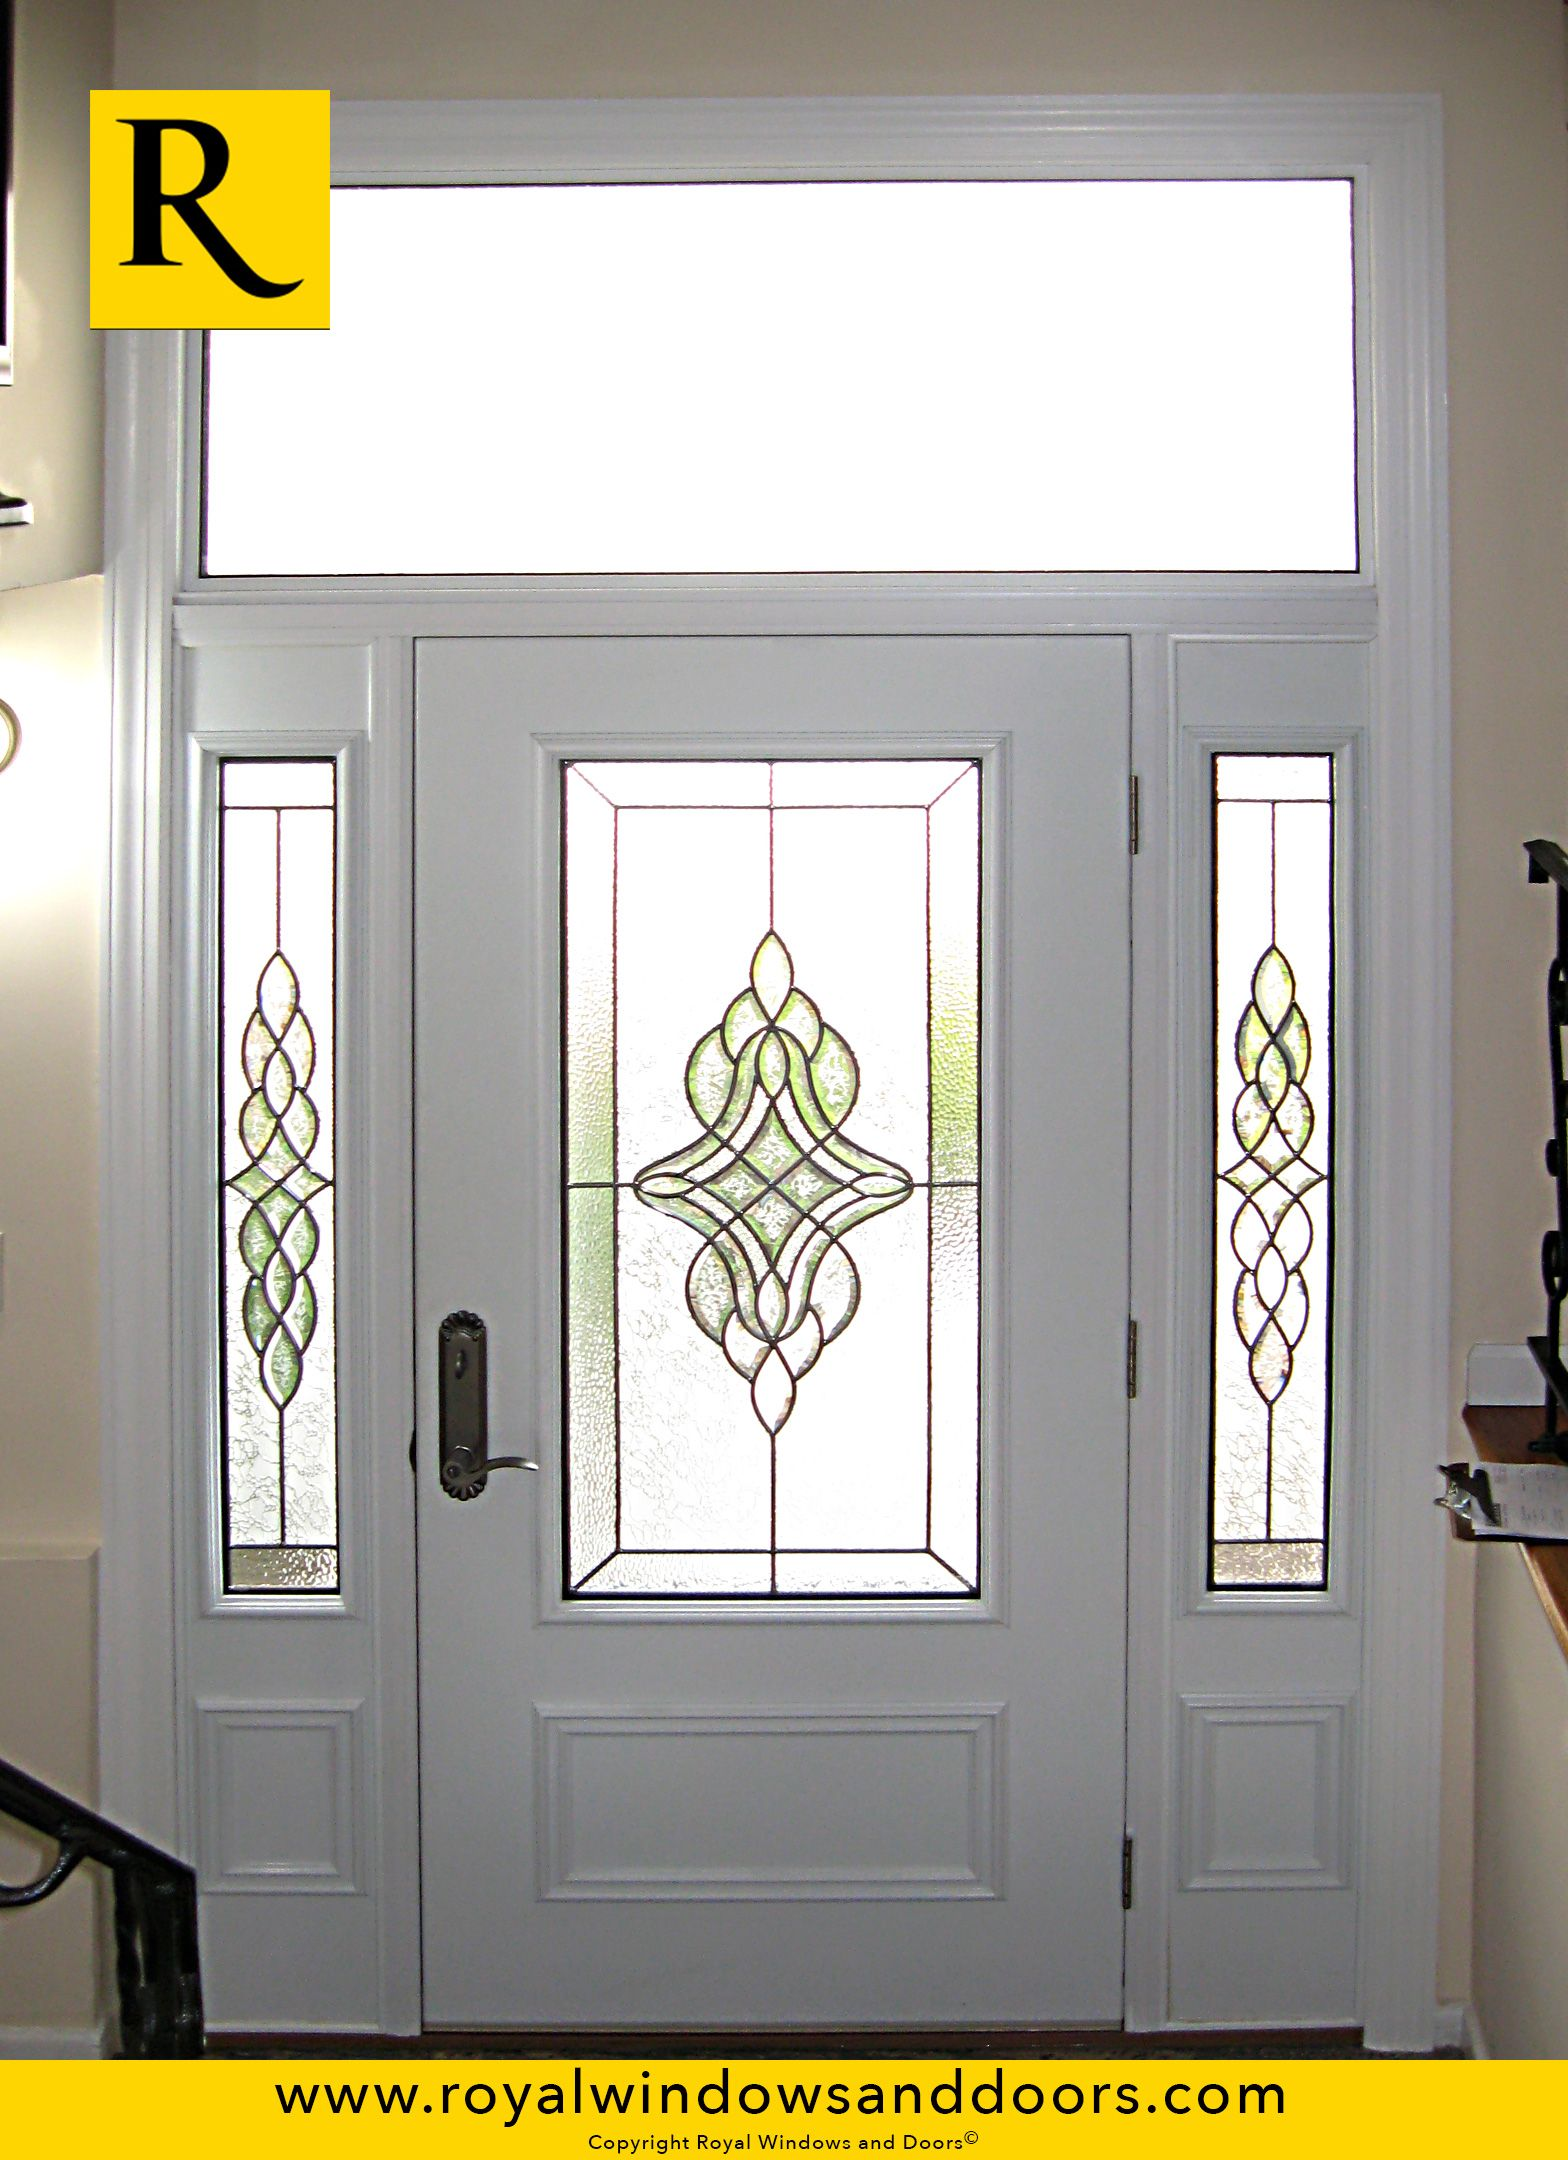 Single Entry Doors With Glass single entry door, two side lites, transom, white finish, designer